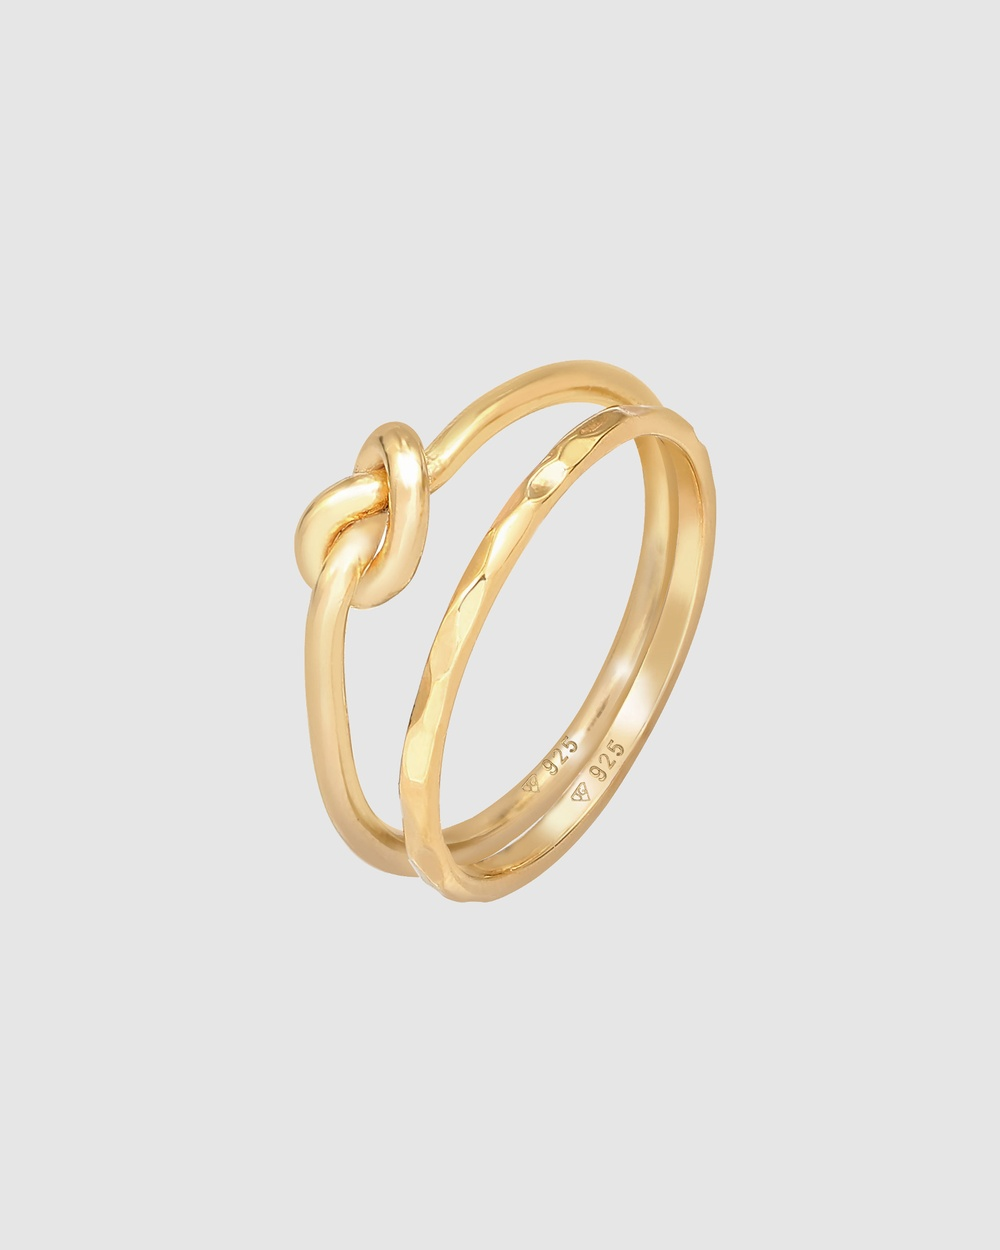 Elli Jewelry Ring Set Knot Trend Basic Minimal in 925 Sterling Silver Gold Plated Jewellery Gold